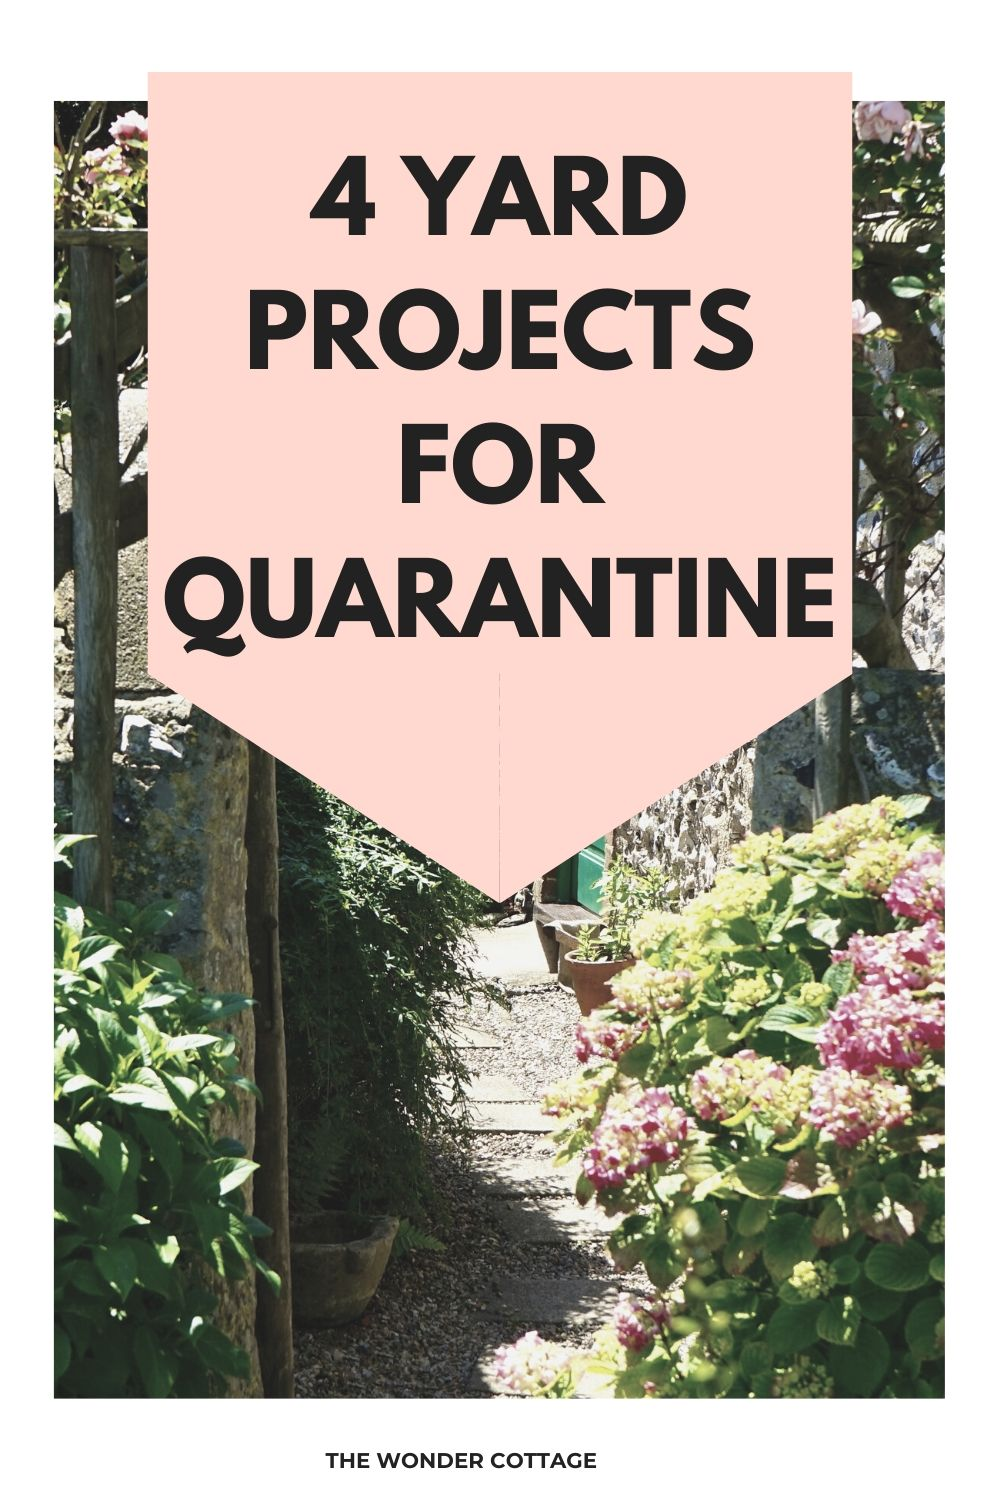 4 yard projects for quarantine